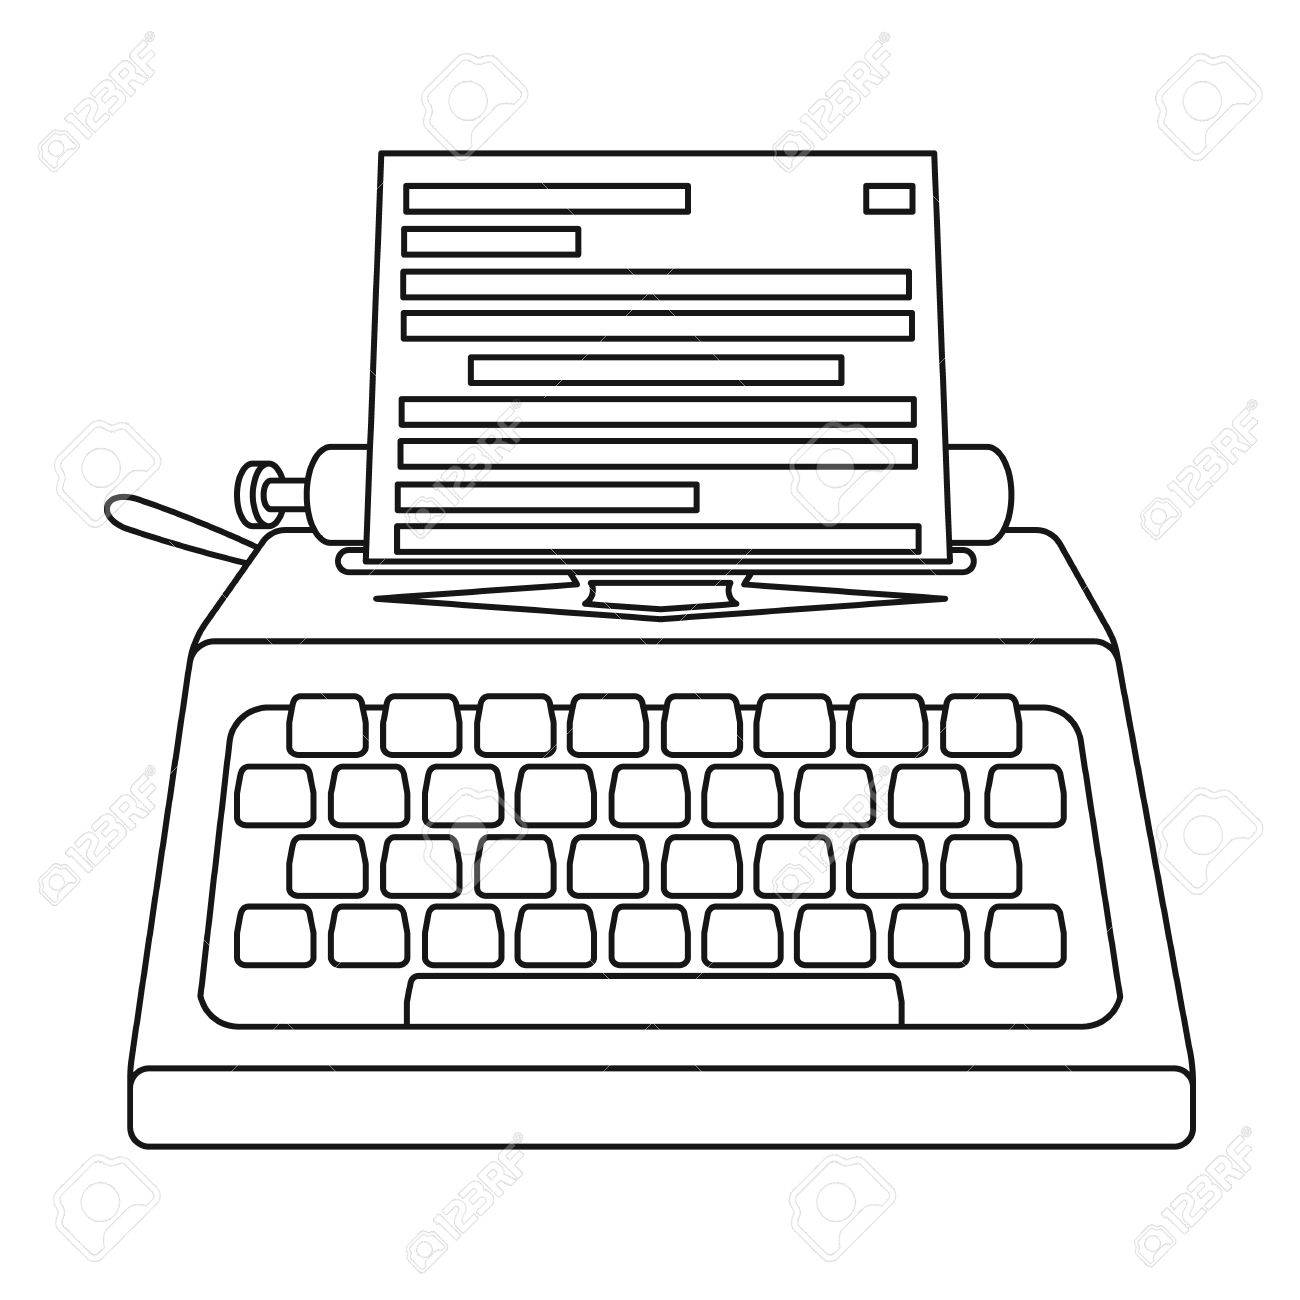 Typewriter Icon In Outline Style Isolated On White Background